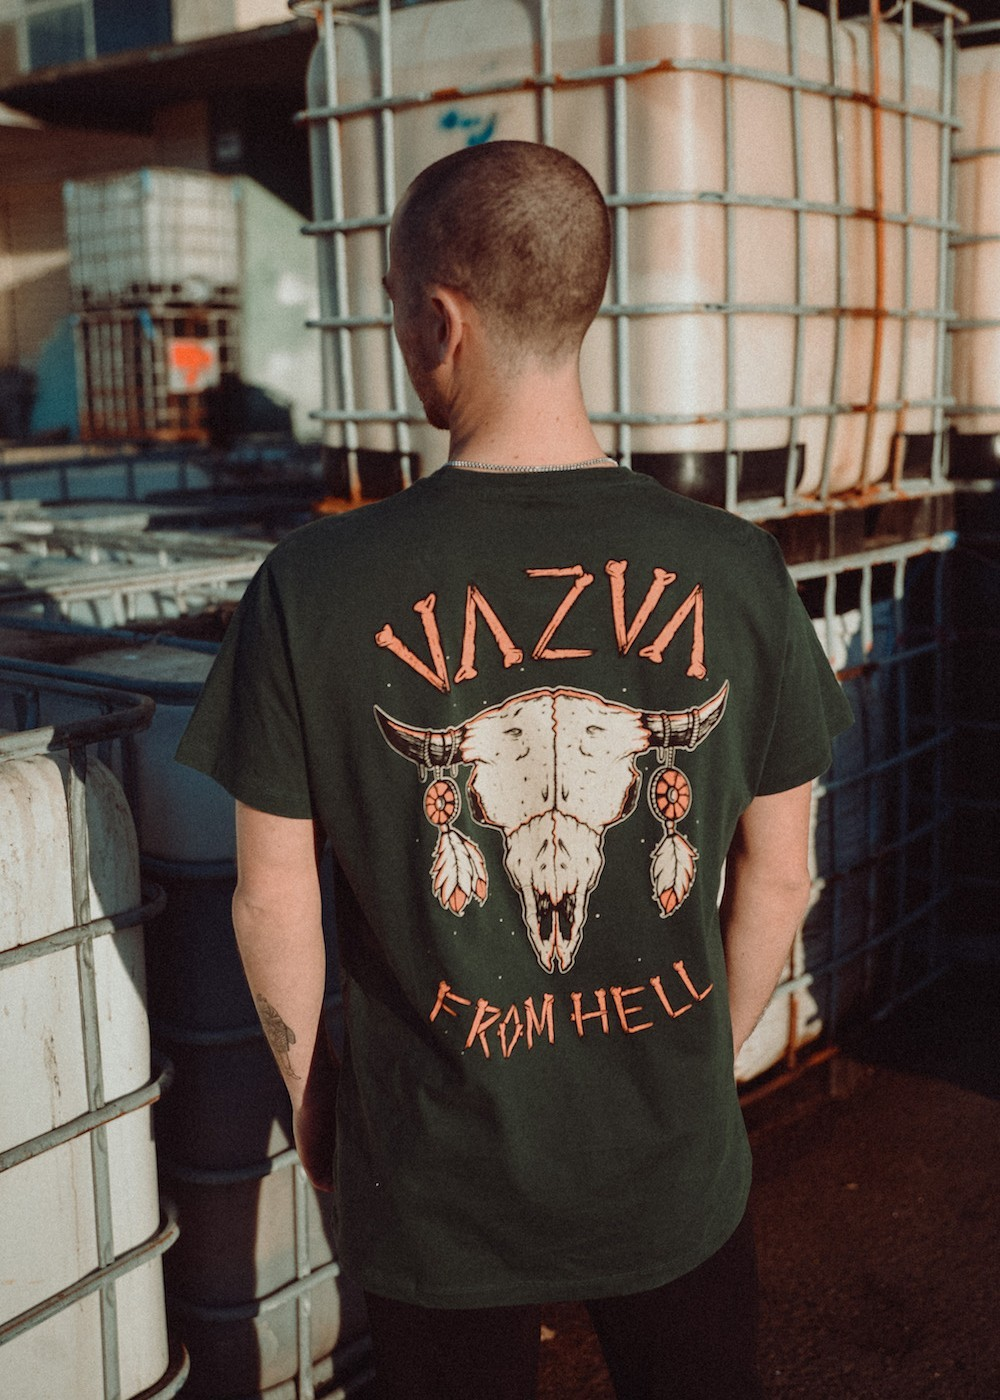 FROM HELL T-SHIRT